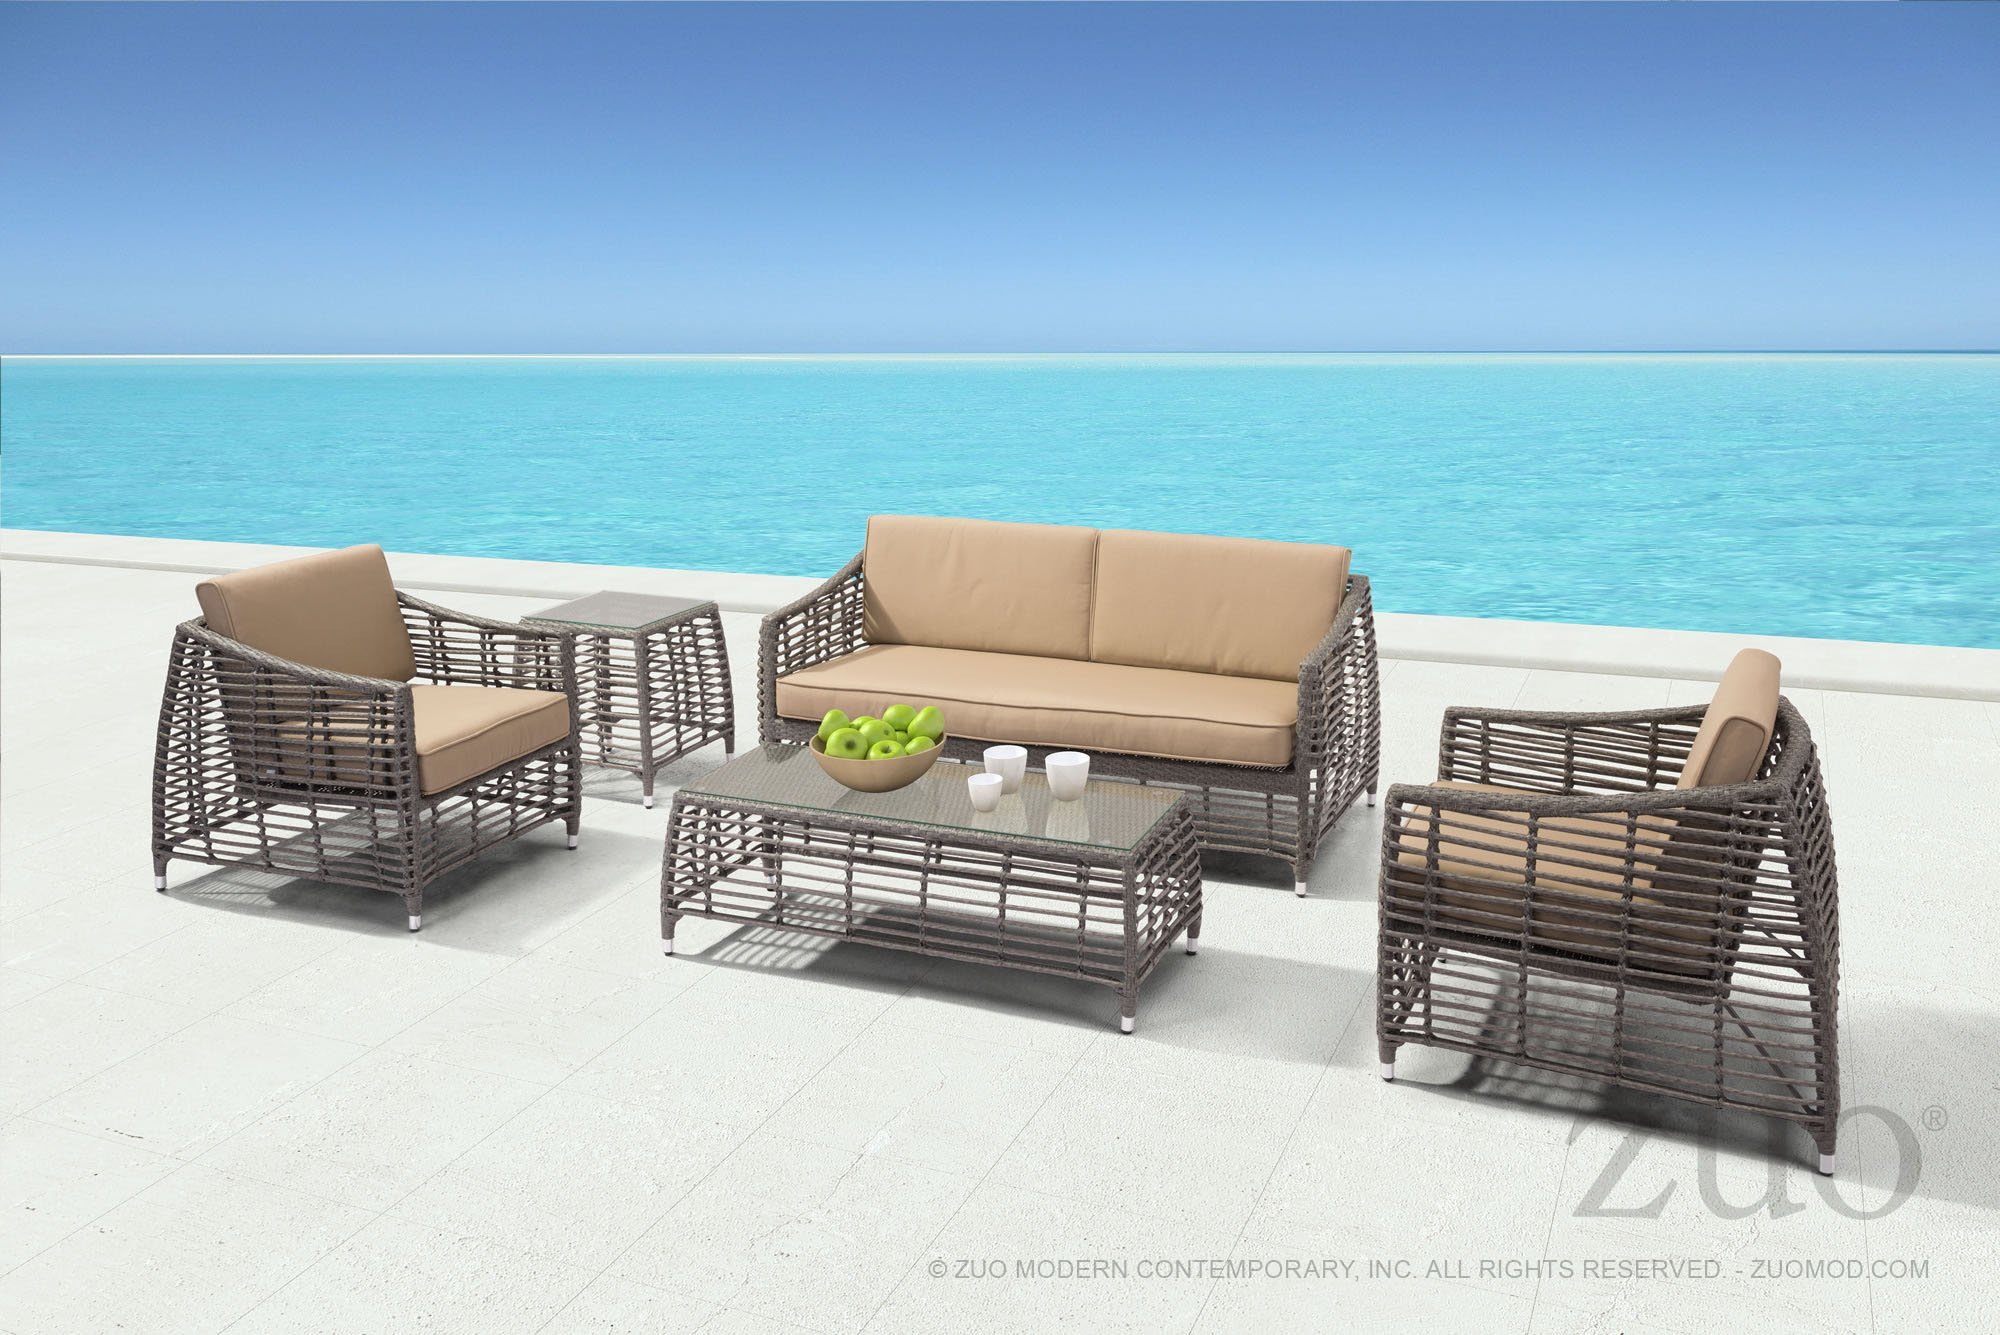 trek beach outdoor side table gray synthetic weave with tempered glass top end tables alan decor blue accent nautical lamps wood stump cool modern tray narrow sofa hairpin iron